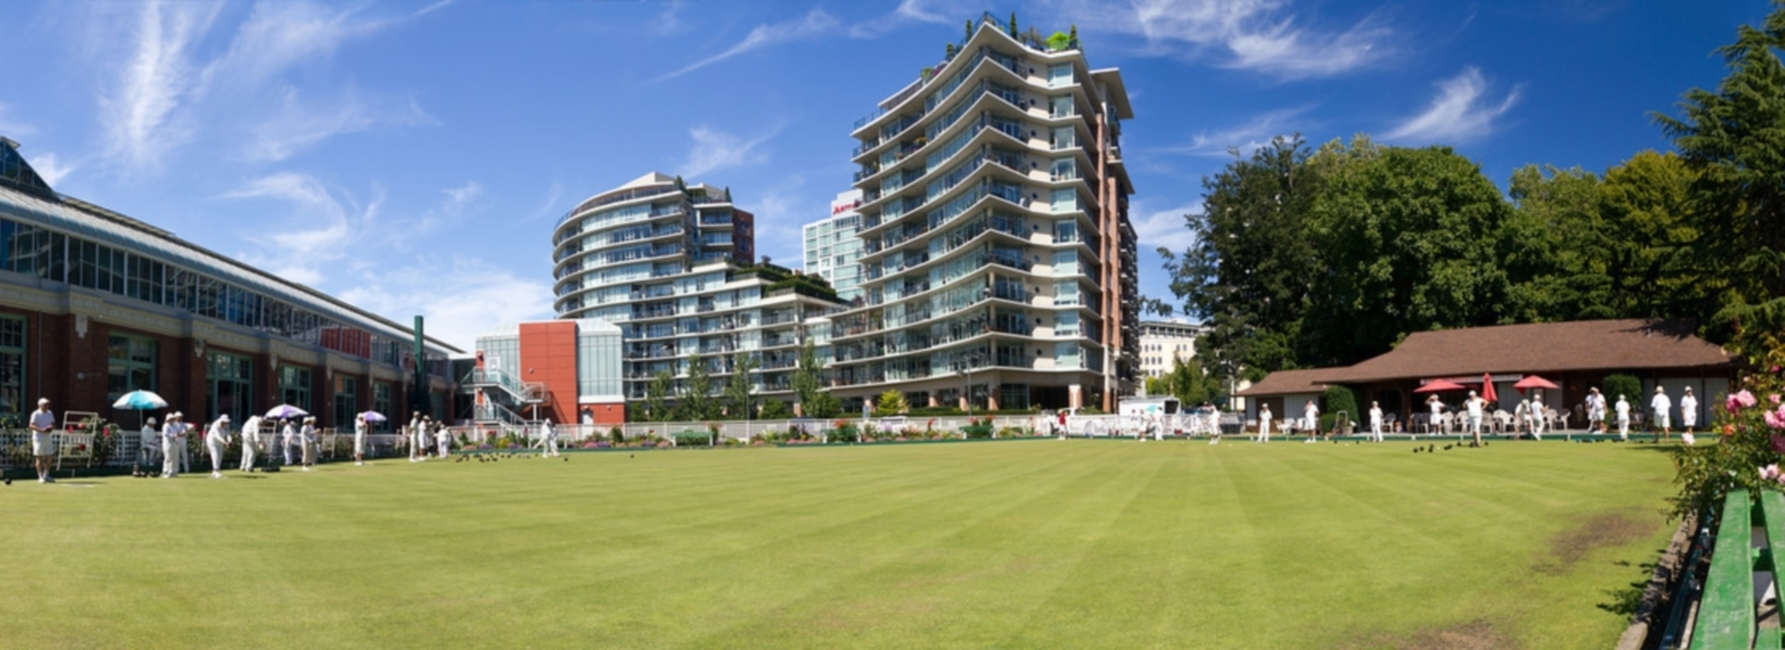 welcome downtown lawn bowling